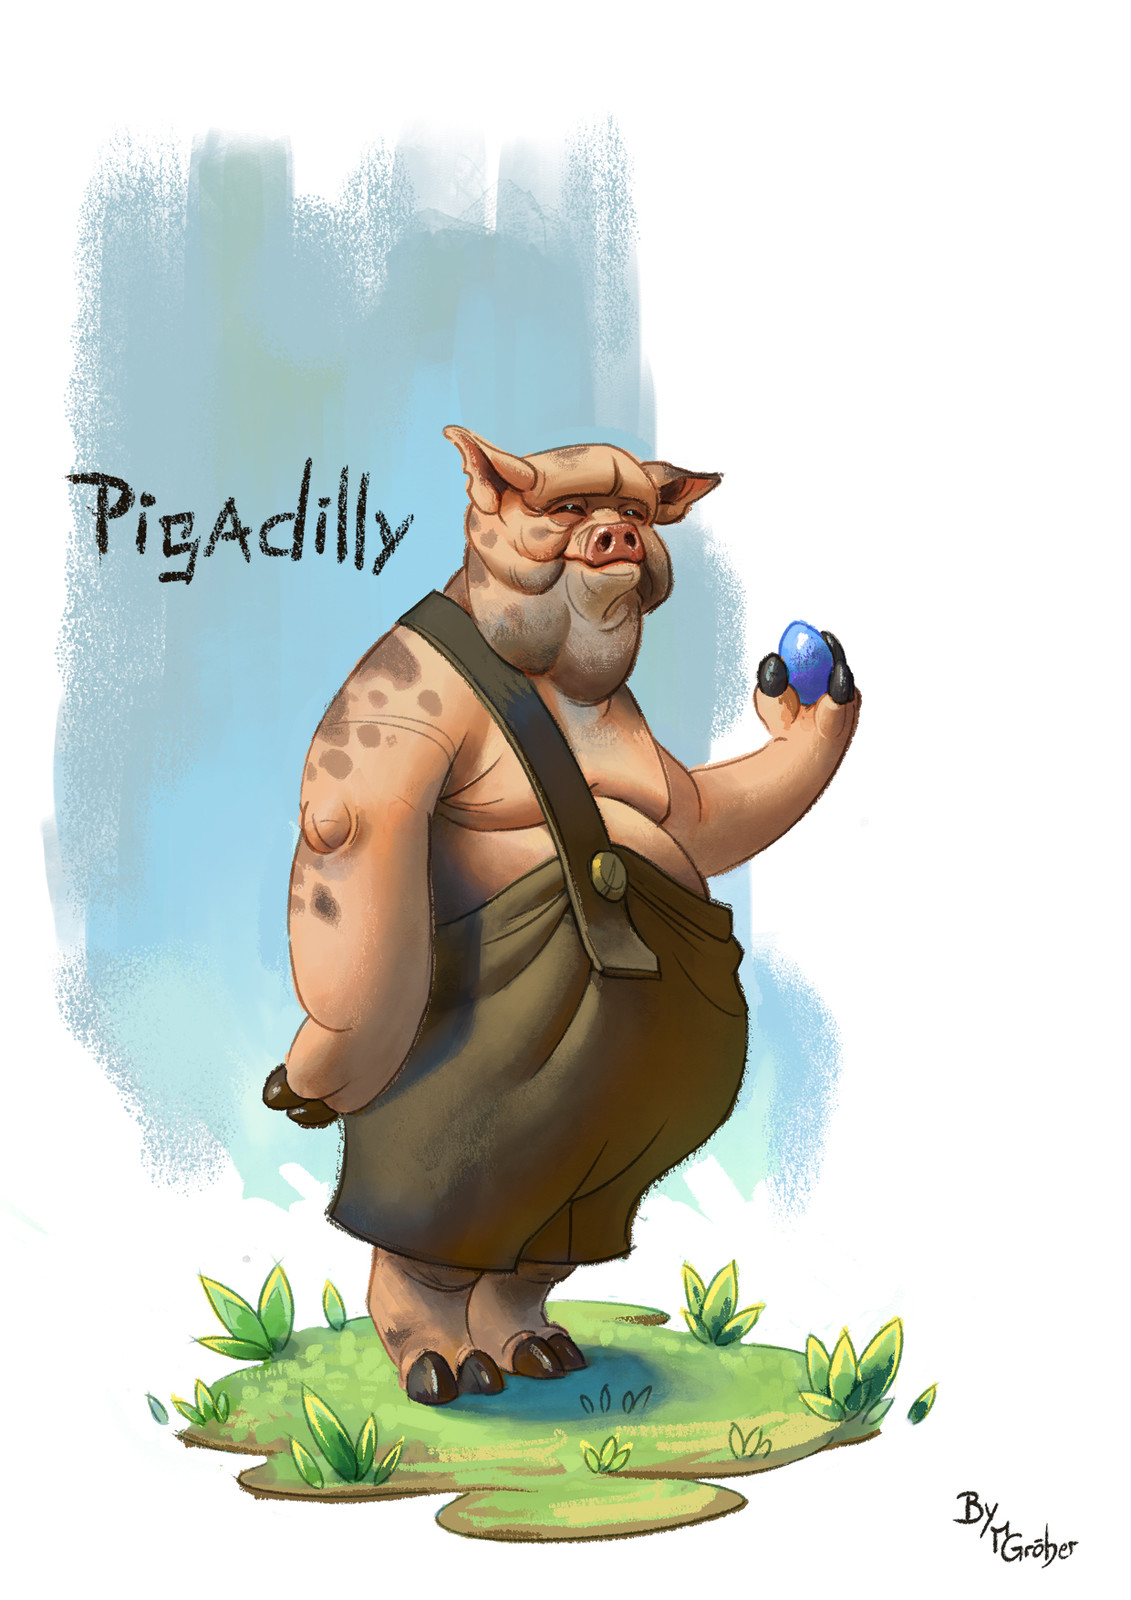 Pigadilly character painting